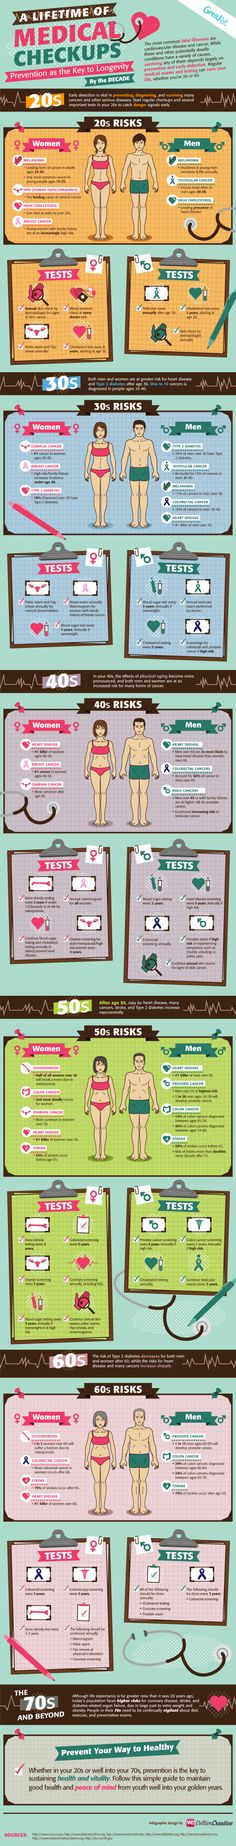 This infographic provides information for medical checkups by age category. It shows for each decade of life what tests you should take, what doctors should check and what kind of preventative health methods one should take in order to ensure good health and longevity.